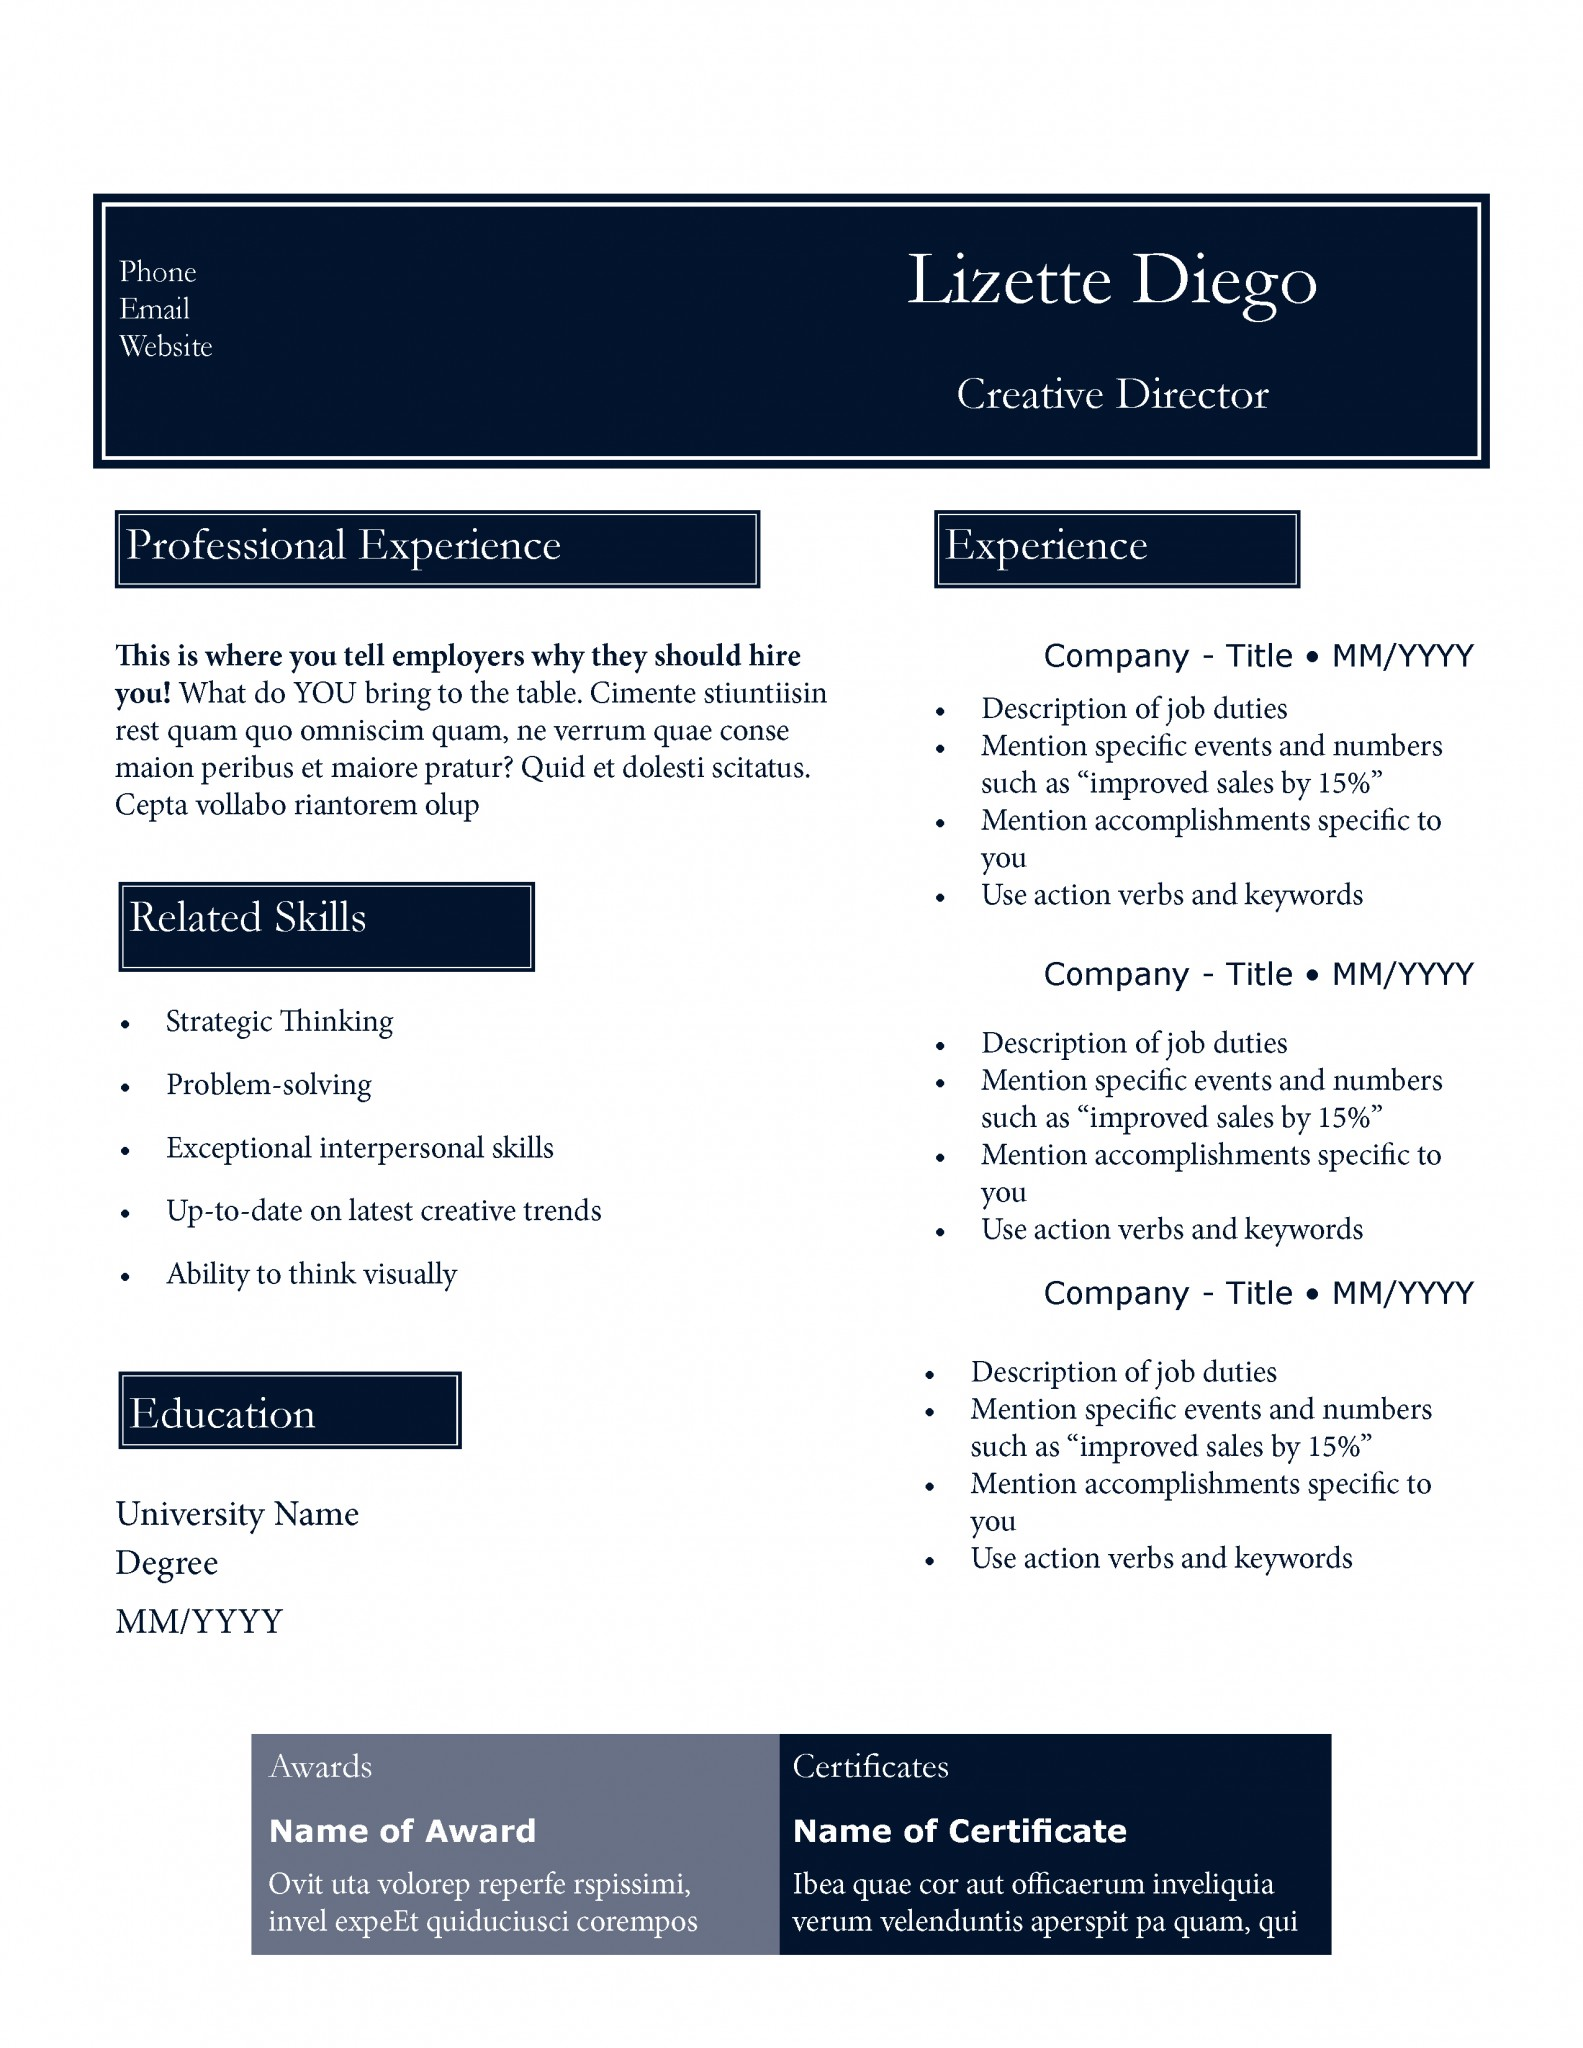 New Slick Resume Templates Pack